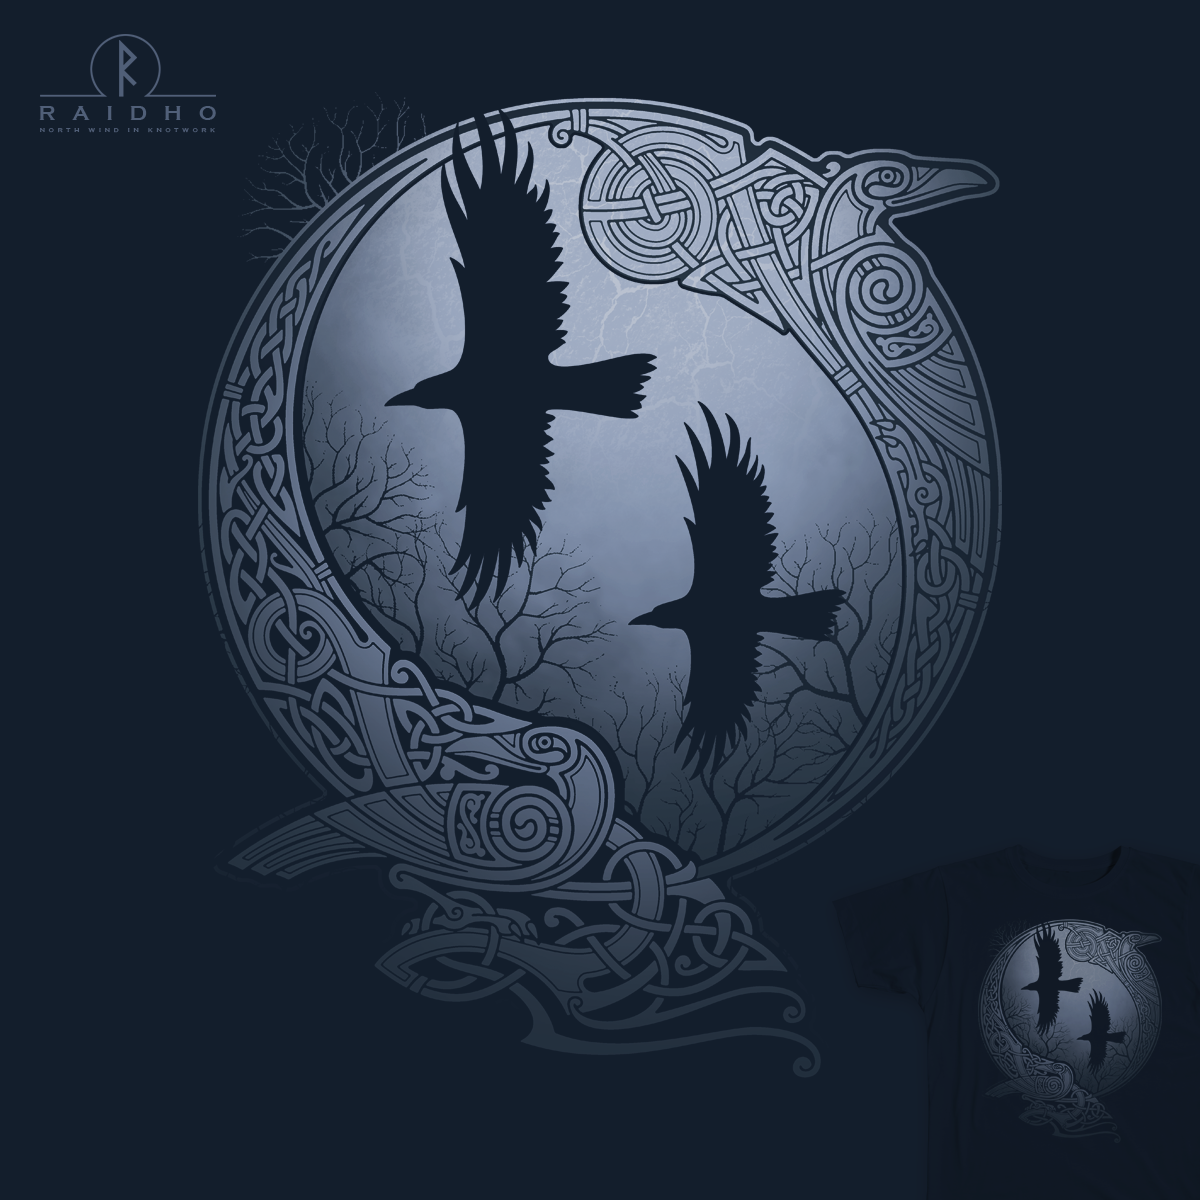 odin 39 s ravens by raidho north wind norse tattoo. Black Bedroom Furniture Sets. Home Design Ideas